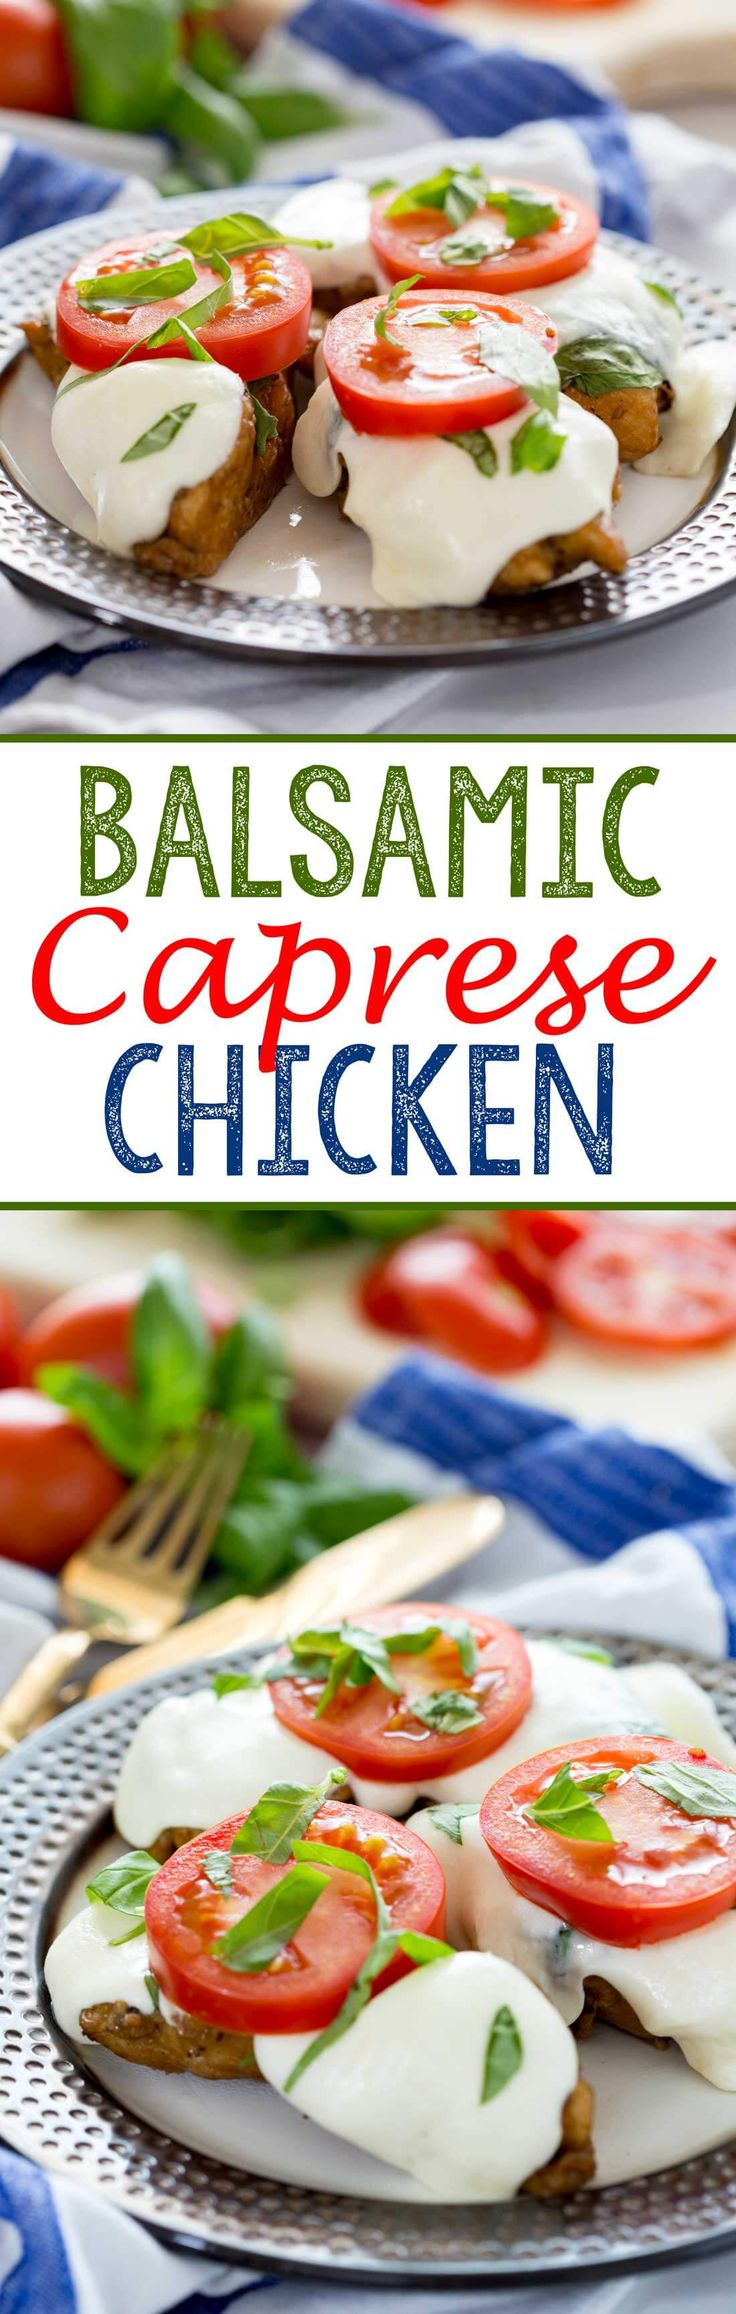 Balsamic Caprese Chicken (Grill or Stove Top) - Eazy Peazy Mealz